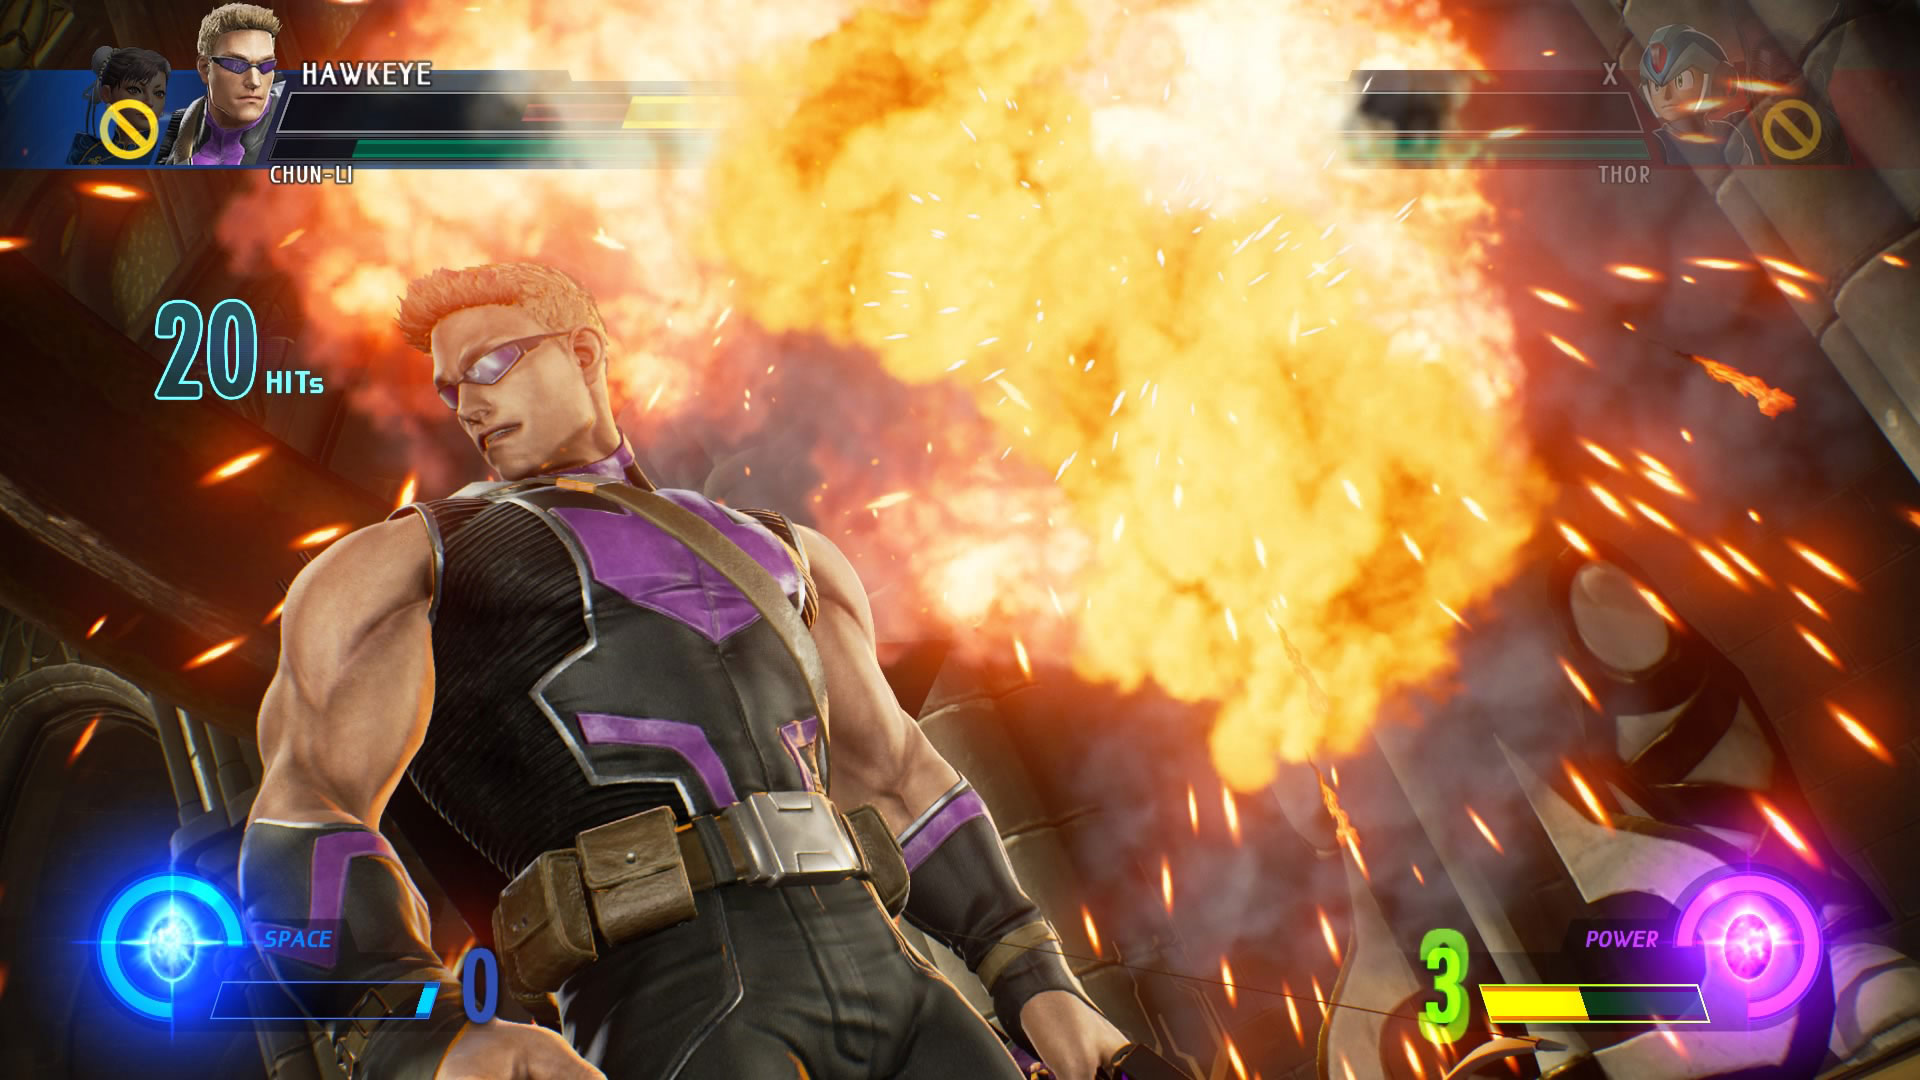 Marvel vs. Capcom: Infinite gameplay screenshots 4 out of 6 image gallery